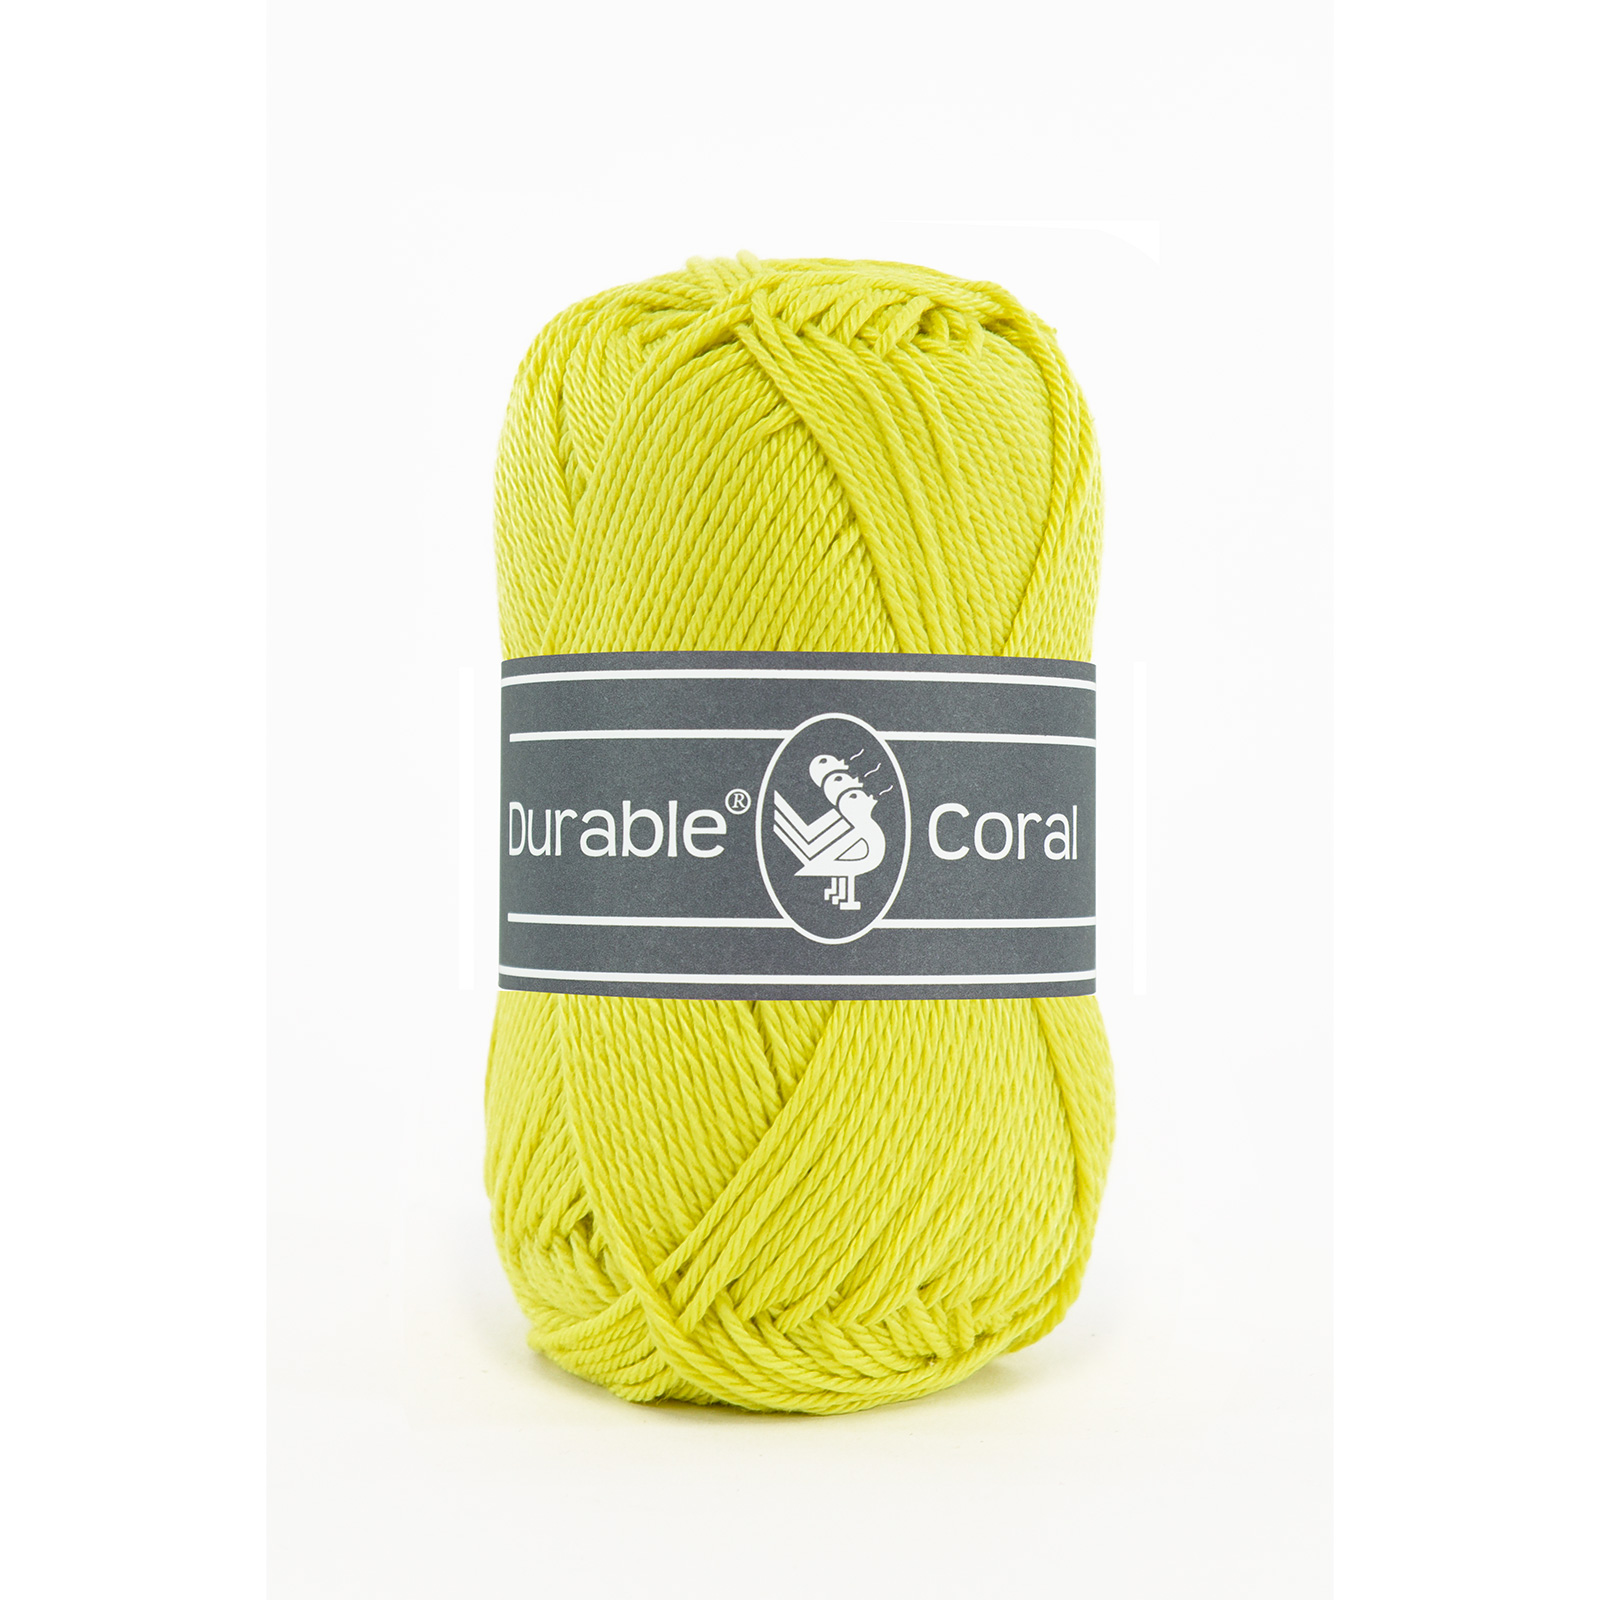 Durable Coral – 351 Light Lime